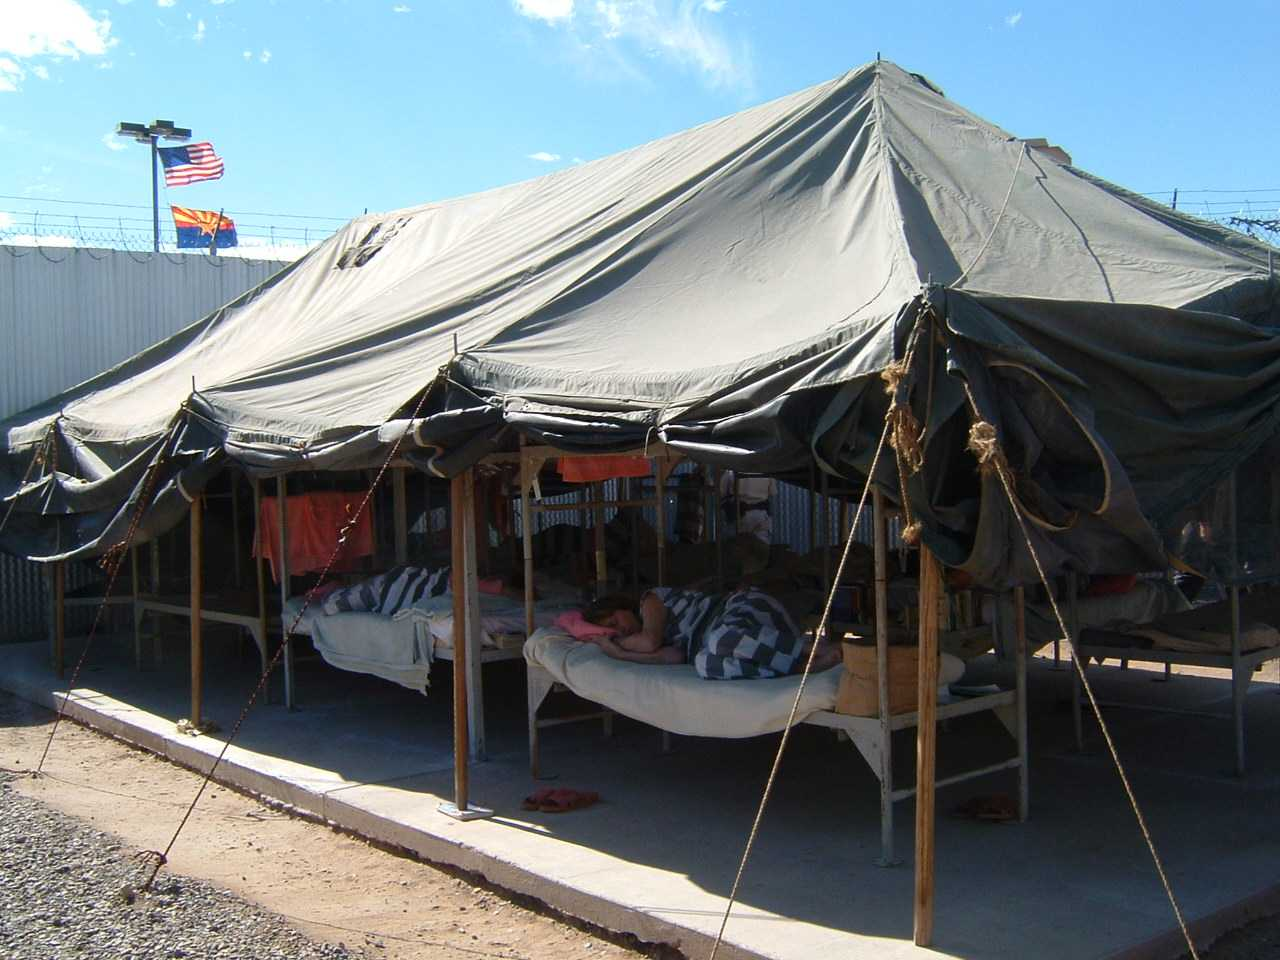 In Arizona prisoners live in a tent city and are forced to do hard labor. & In Arizona prisoners live in a tent city and are forced to do ...